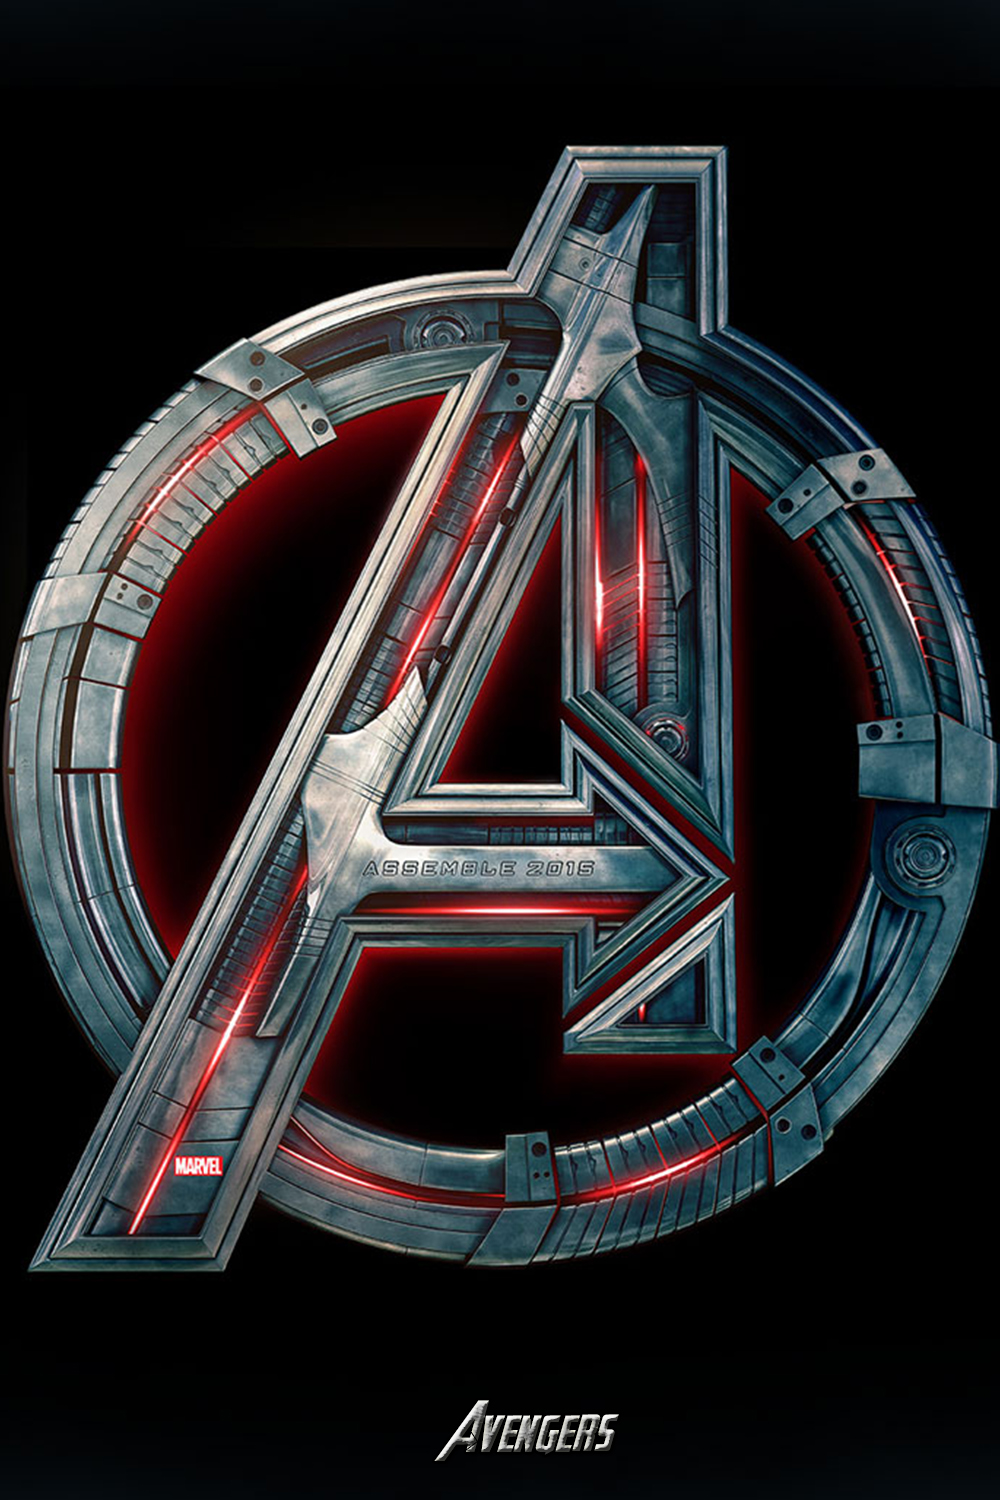 Avengers Wallpaper Hd 4k Download In 2020 With Images Art Wallpaper Iphone Avengers Wallpaper Iphone Wallpaper Images